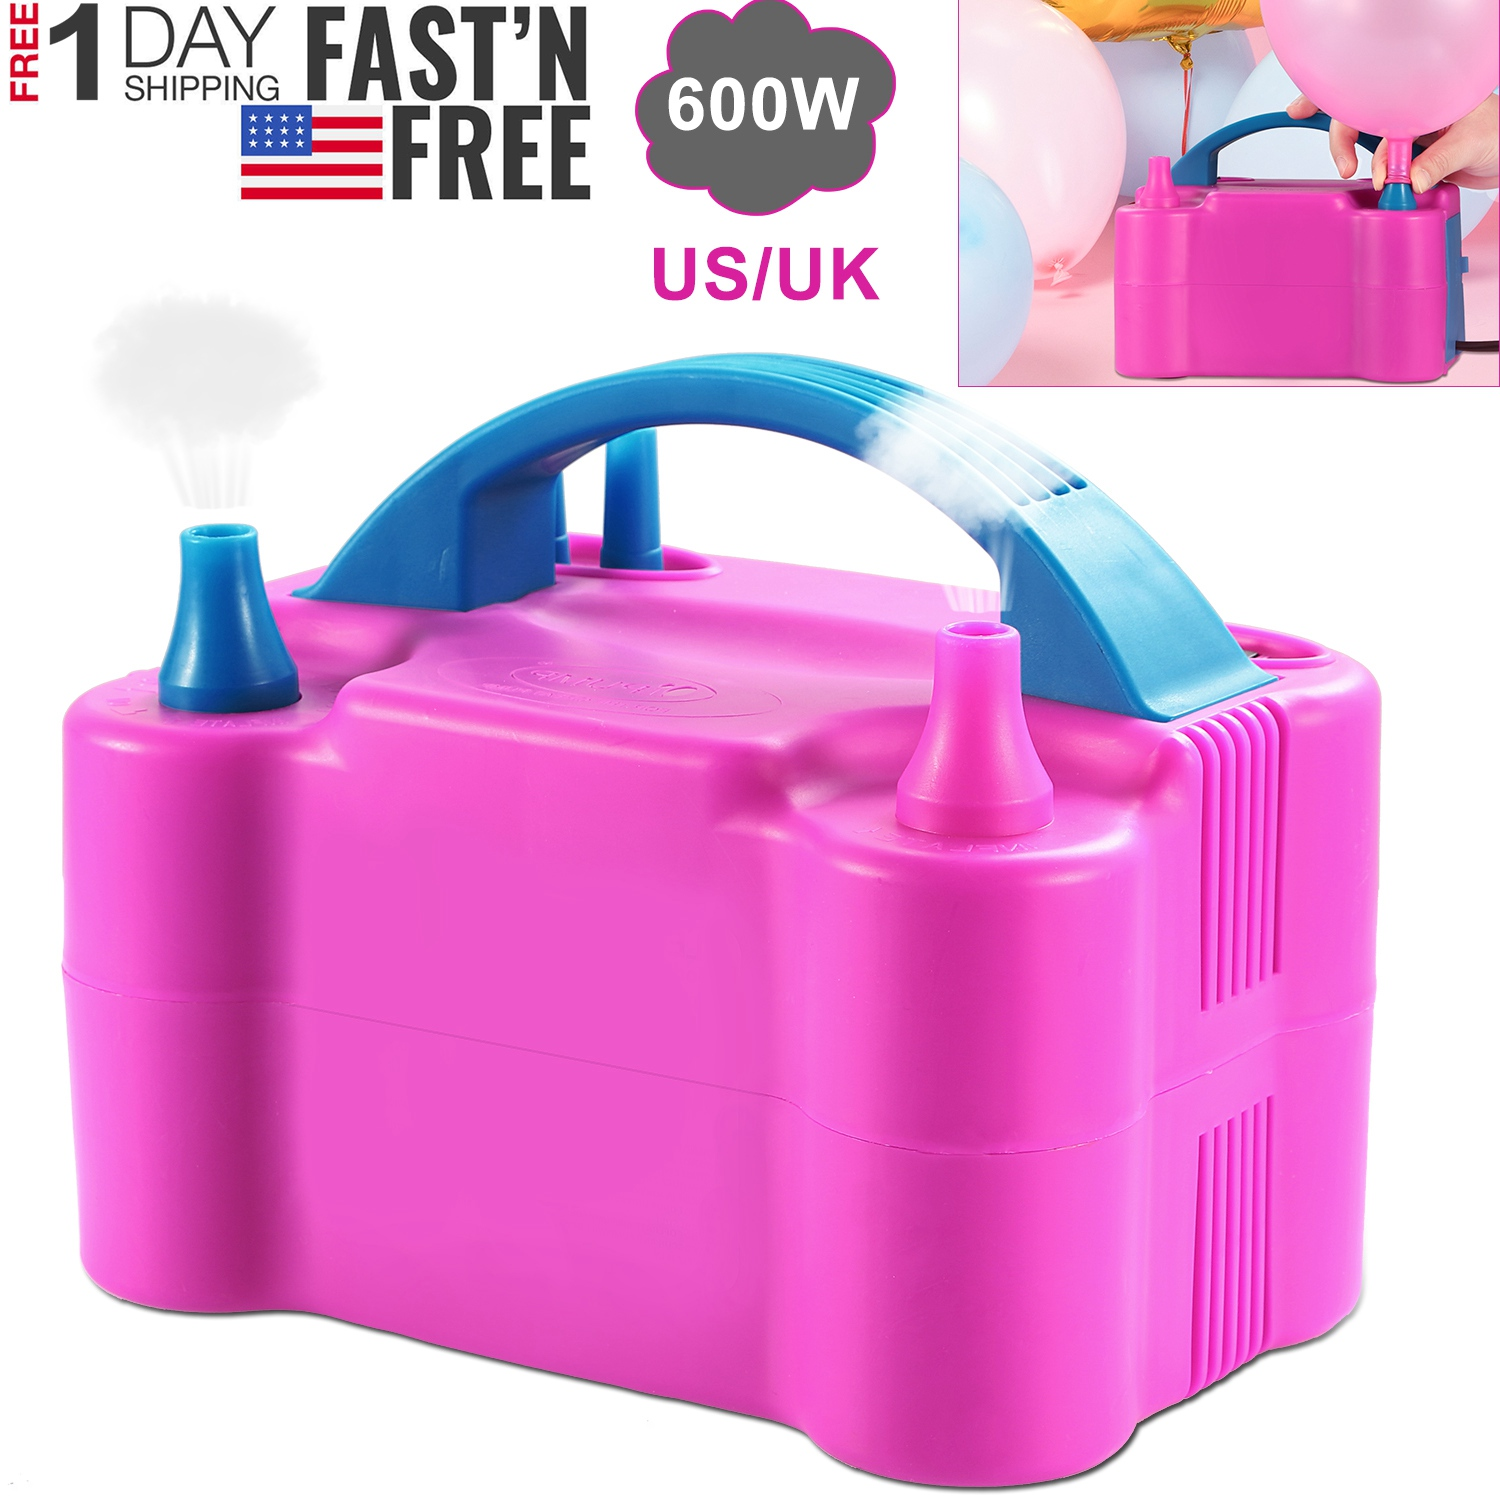 Portable Dual Nozzle Electric Balloon Blower Pump Air Inflator-Party 110v 600w